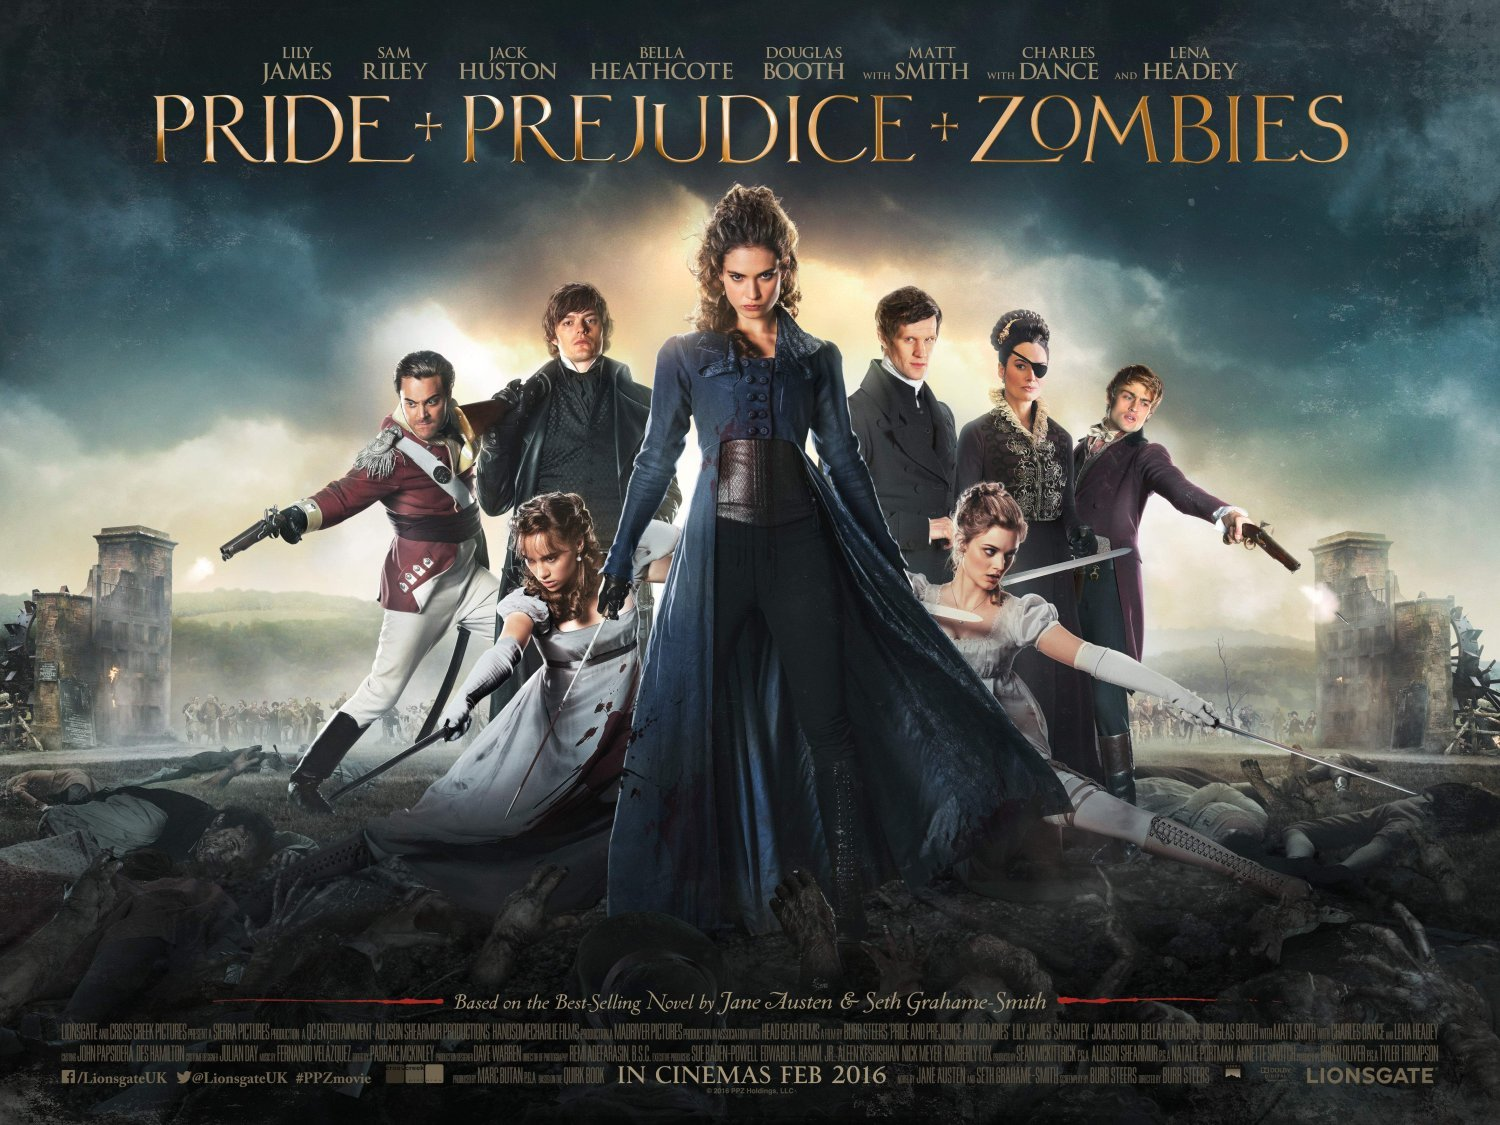 Ellie Bamber, Bella Heathcote, Lily James, Millie Brady, and Suki Waterhouse are the Bennet sisters in 'Pride and Prejudice and Zombies,' with Sam Riley, Jack Huston, Charles Dance, and Lena Heady